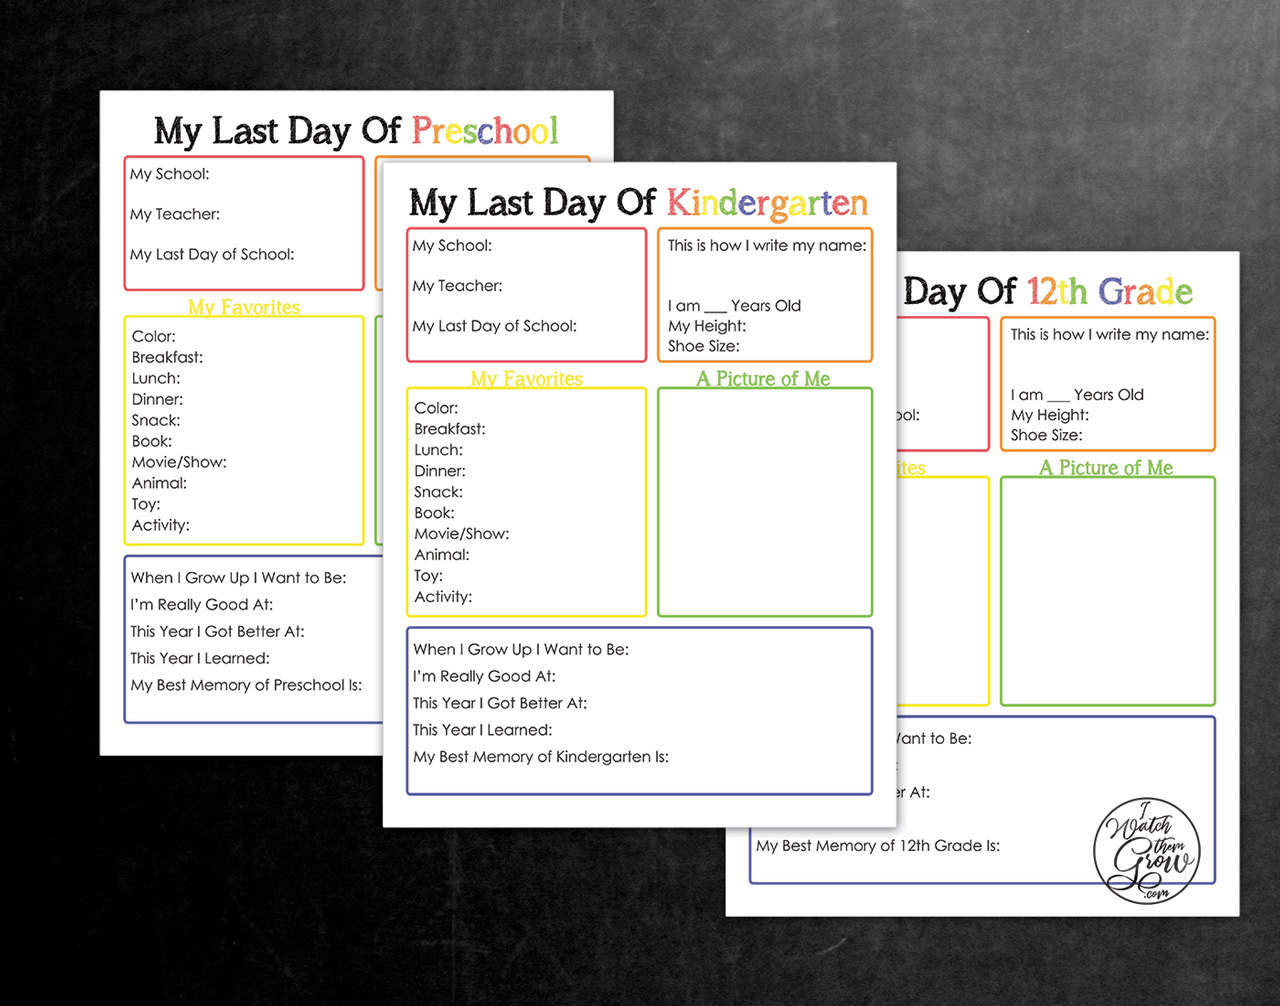 image regarding Last Day of Kindergarten Printable titled Printable Past Working day of College Job interview - I Perspective Them Increase